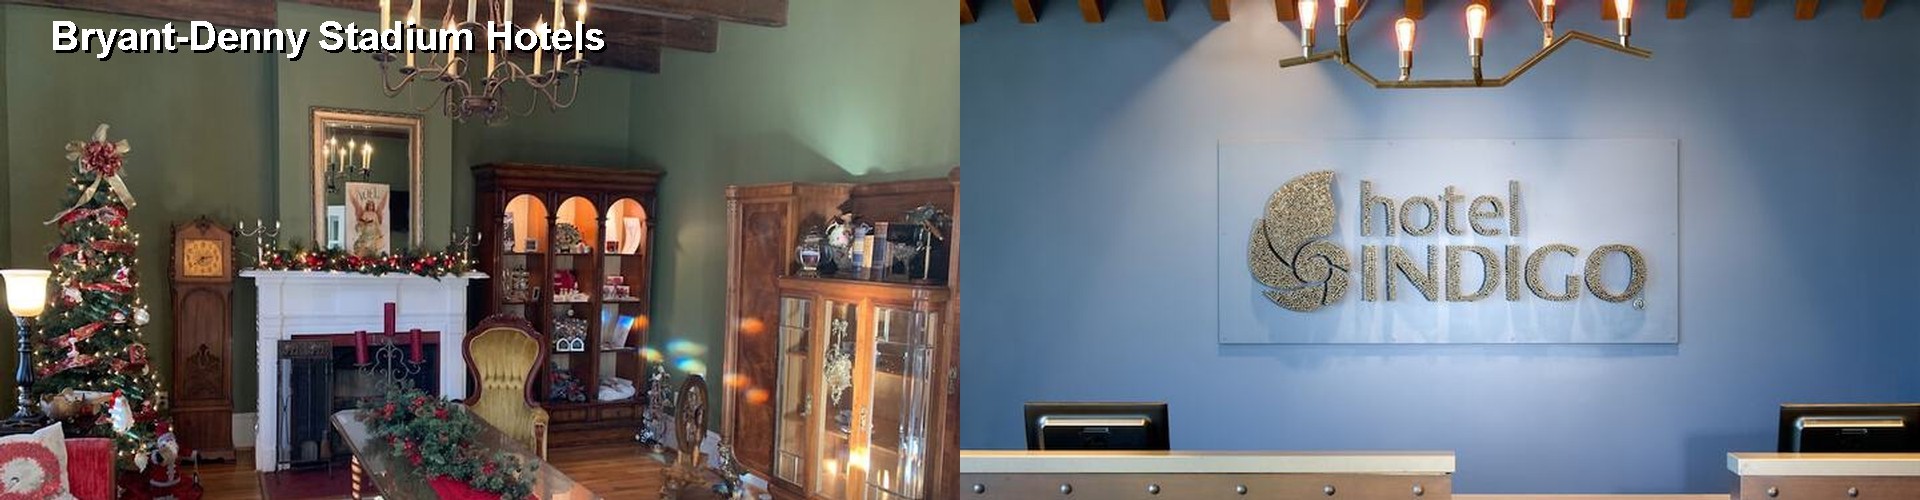 5 Best Hotels near Bryant-Denny Stadium